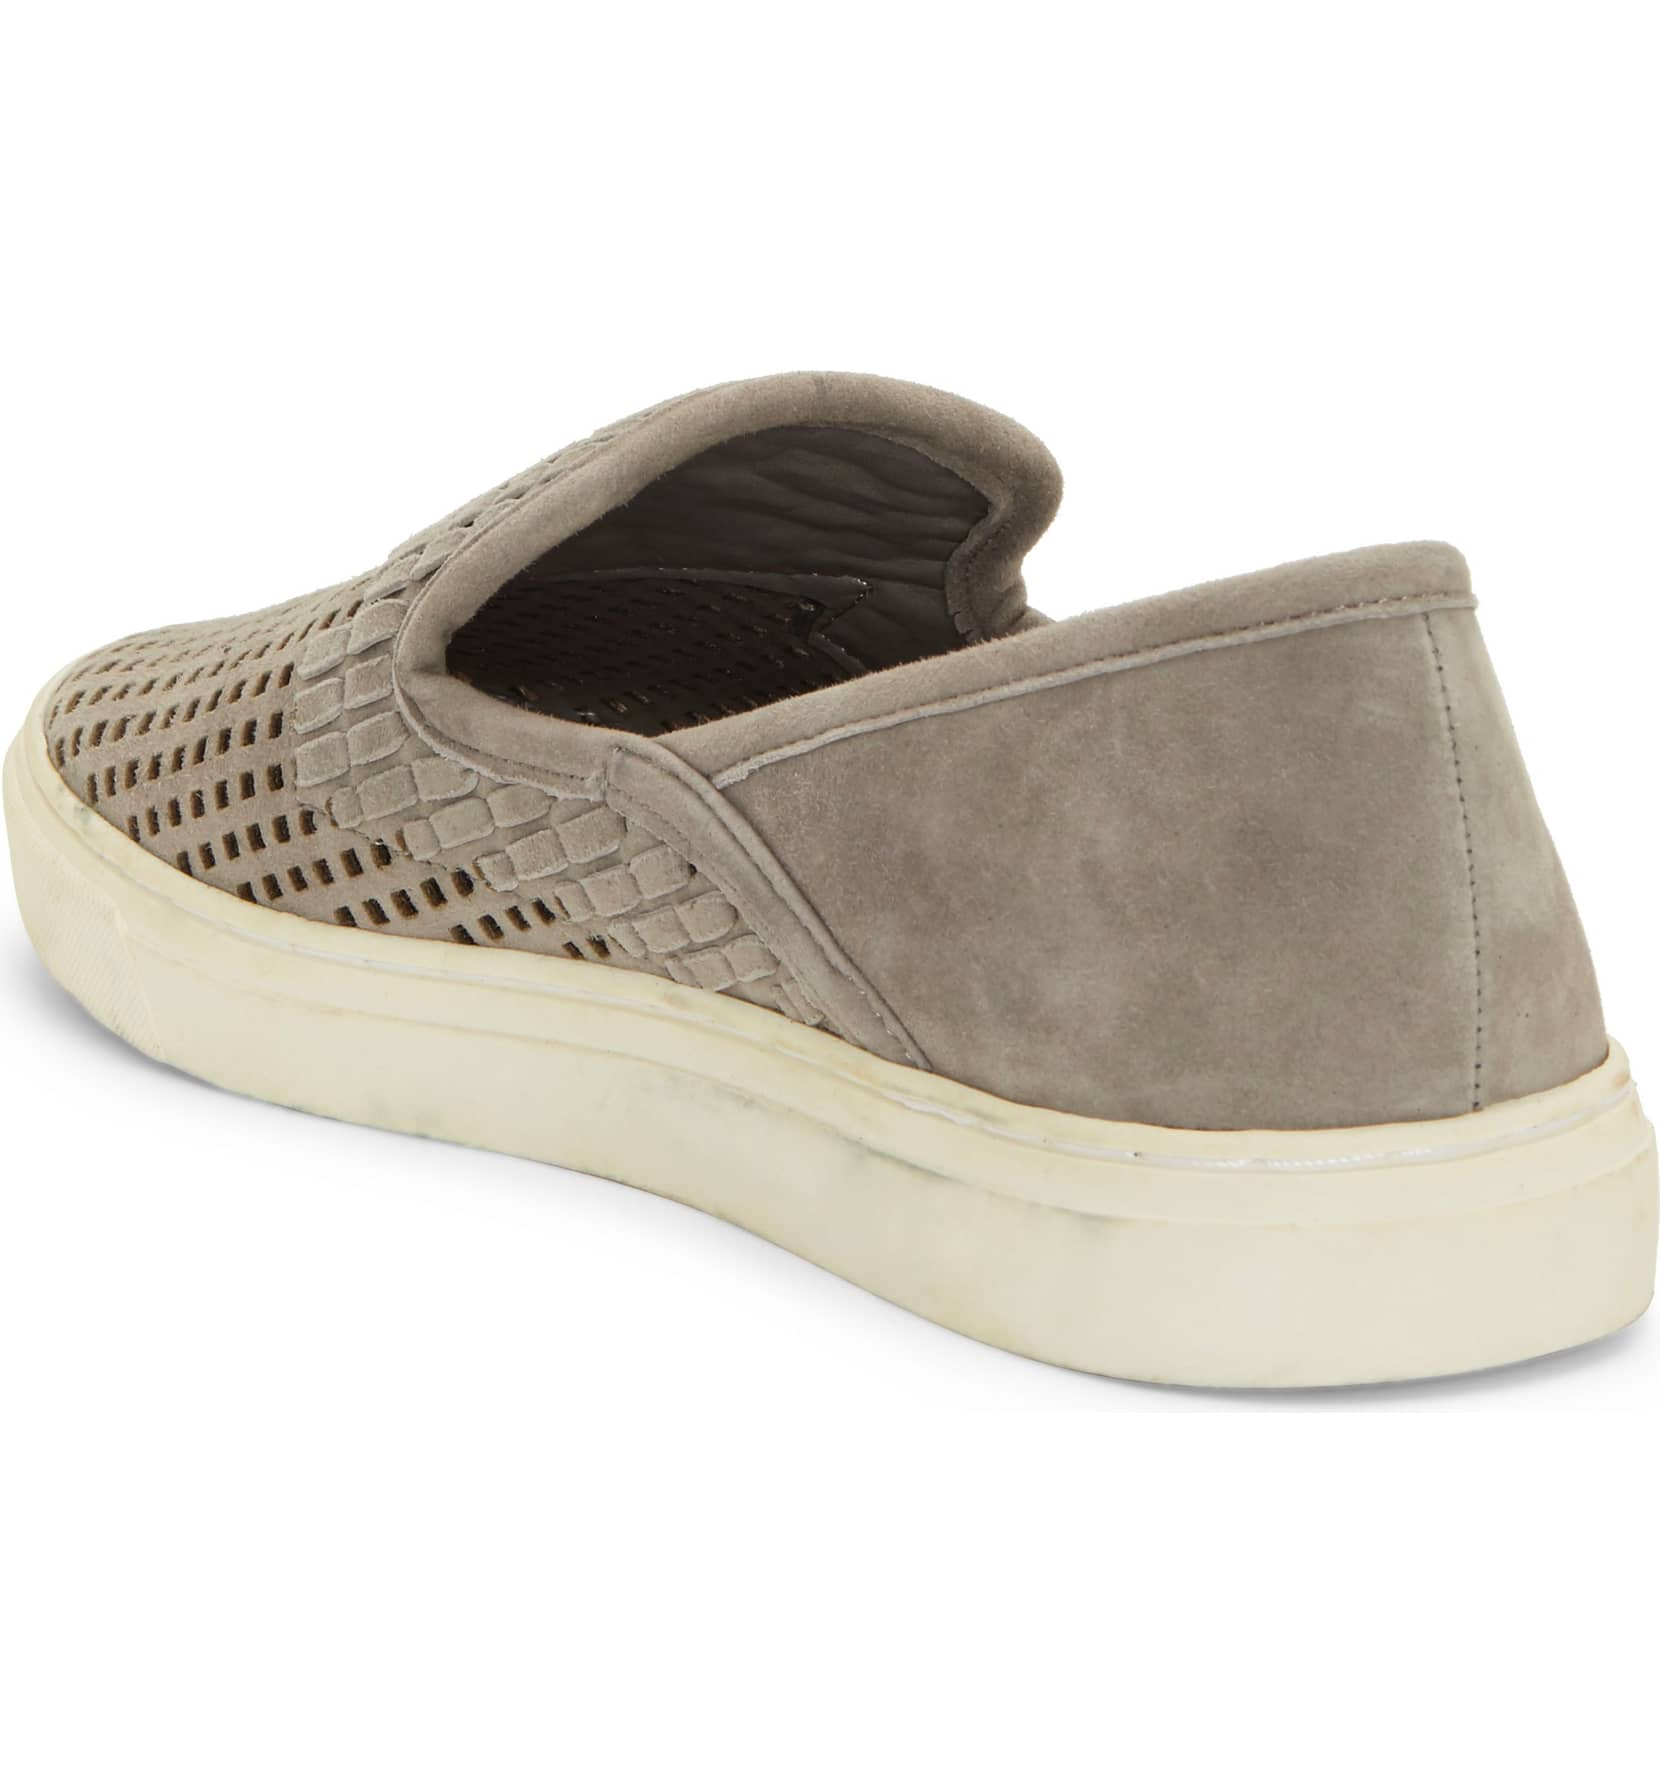 Vince-Camuto-Bristie-Storm-Grey-Leather-Woven-White-Sole-Slip-On-Sneakers thumbnail 17